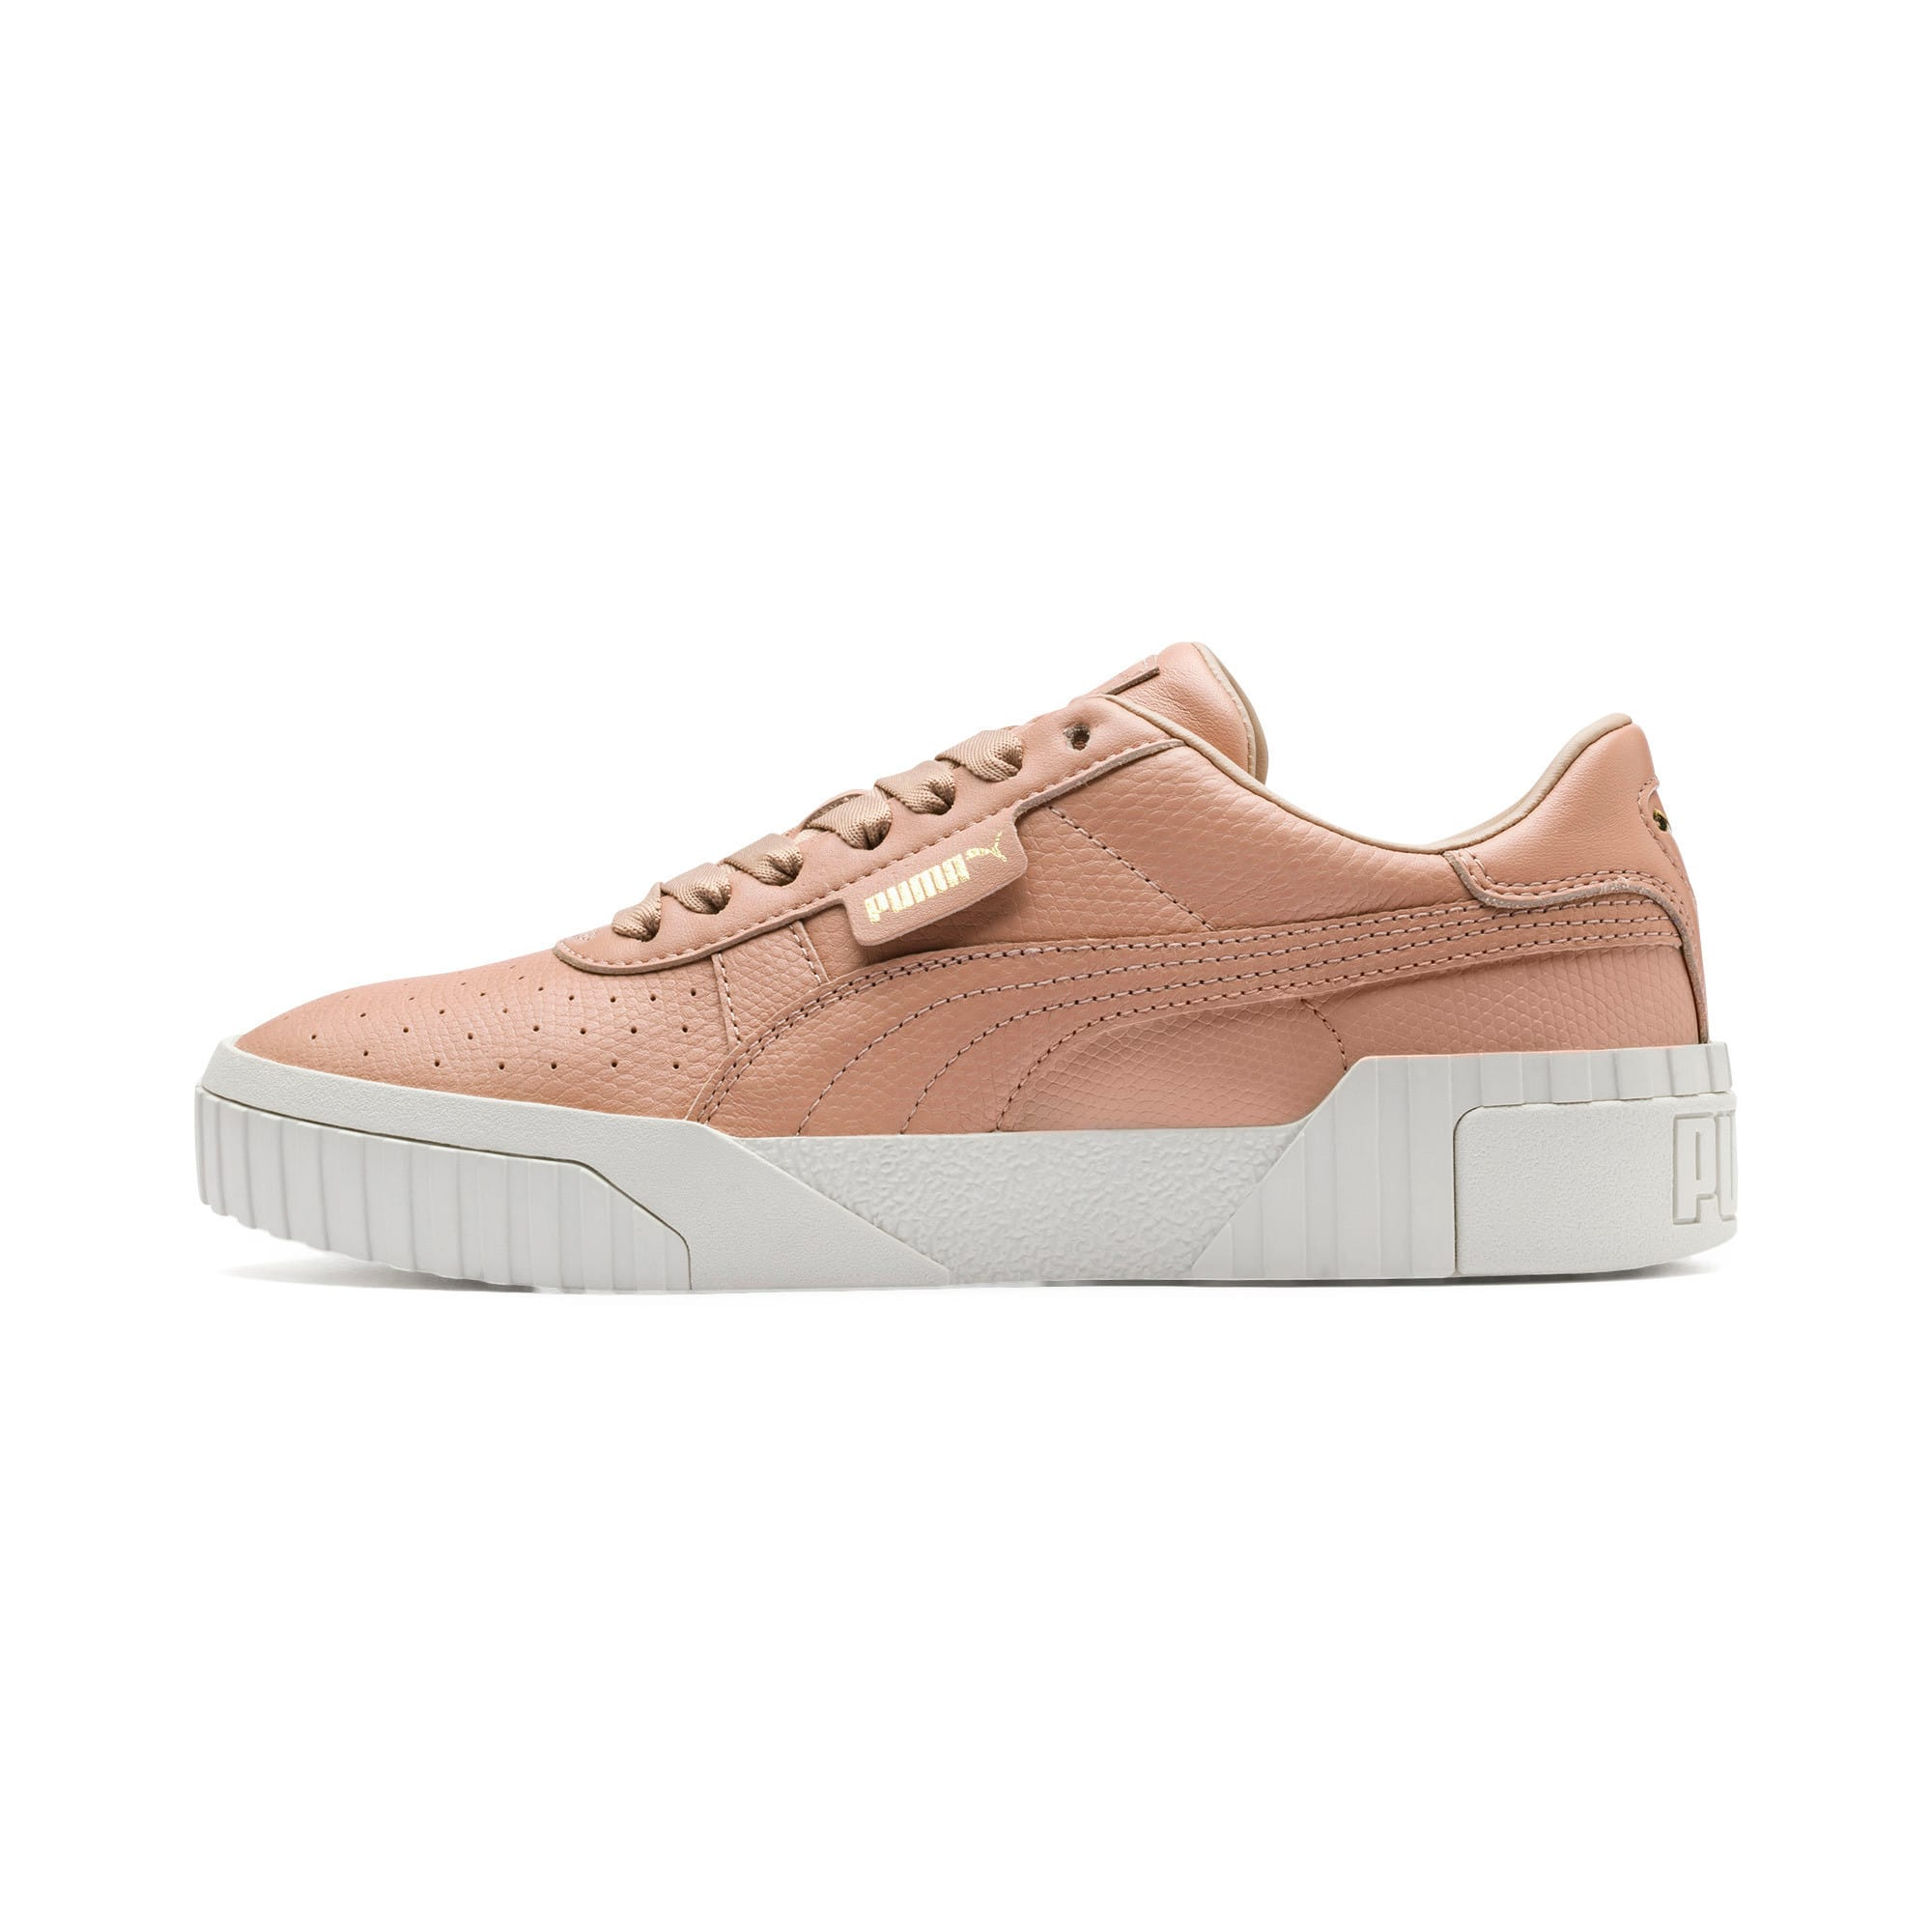 Thumbnail 1 of Cali Emboss Women's Trainers, Nougat, medium